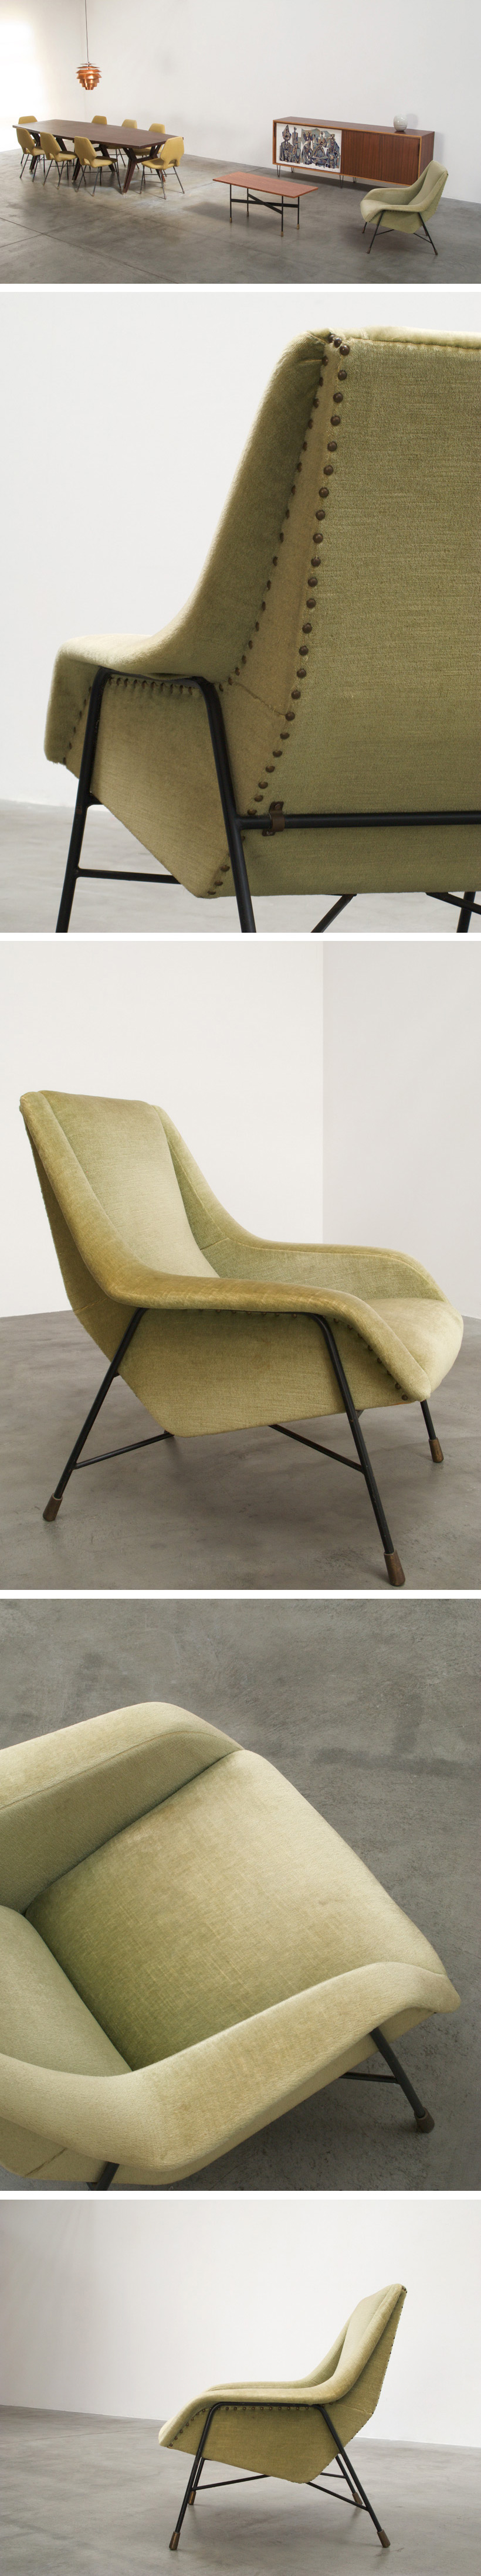 Alfred Hendrickx Belform Lounge chair S 13 Large